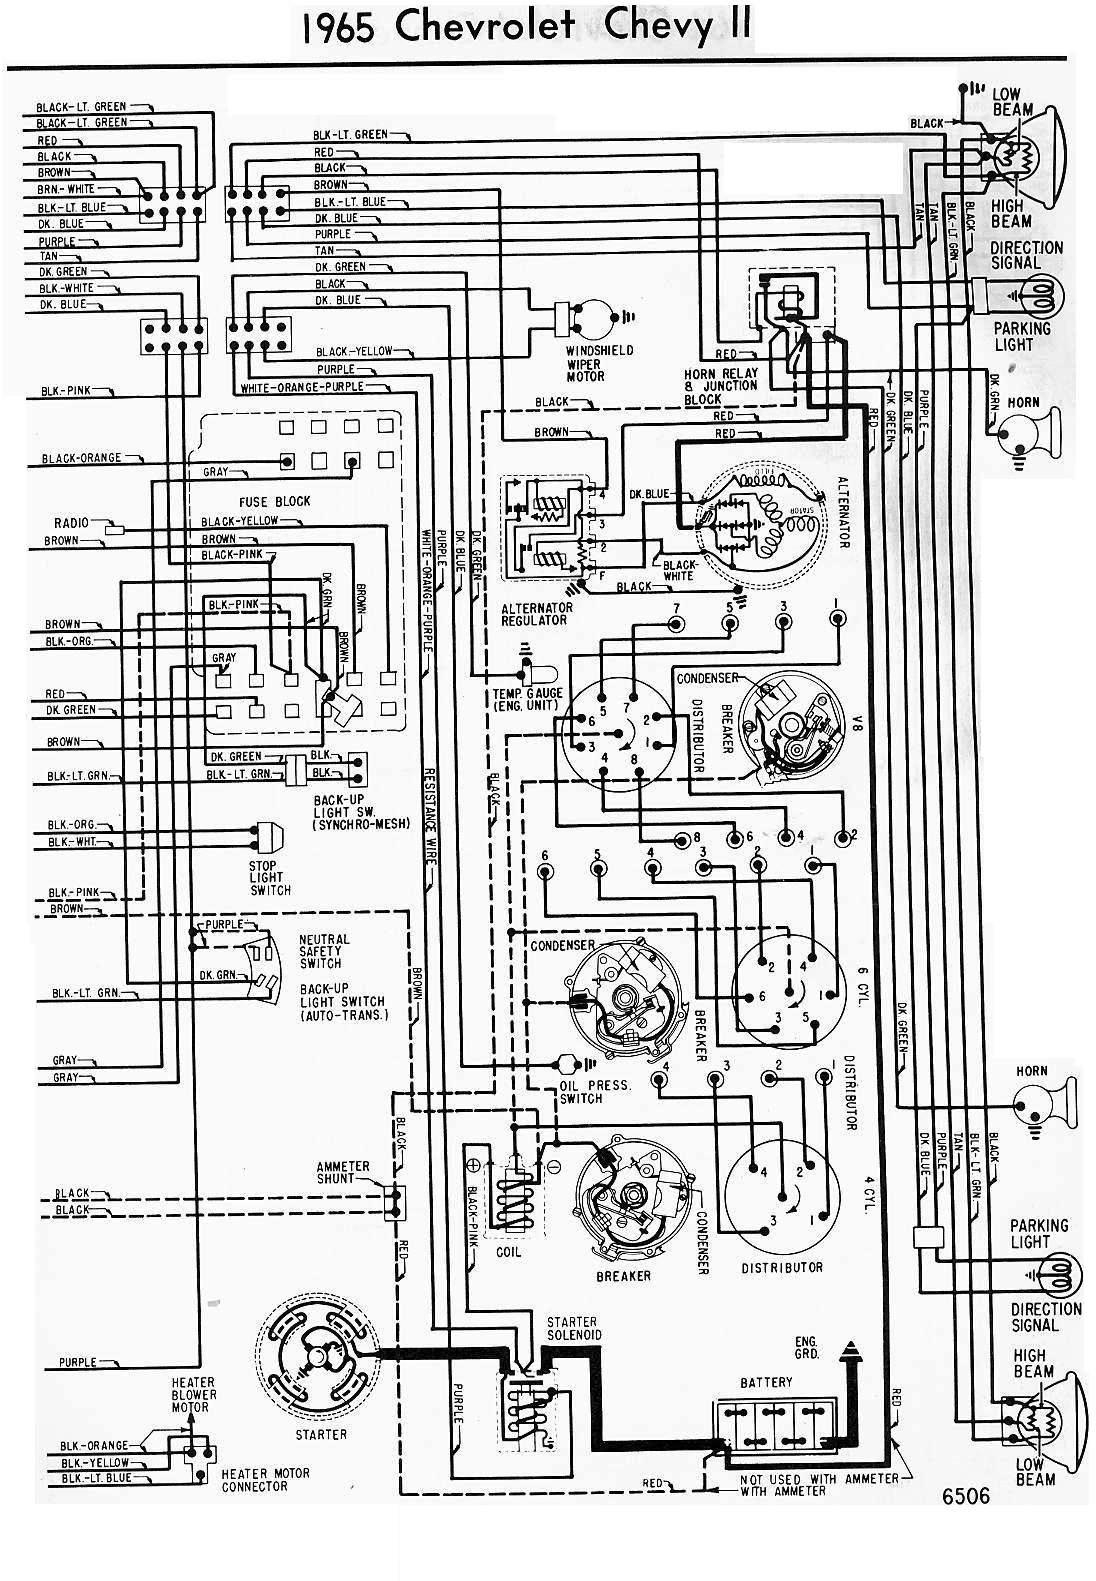 1965 chevrolet chevy ii wiring diagram | all about wiring diagrams wiring diagram for a 1965 cadillac